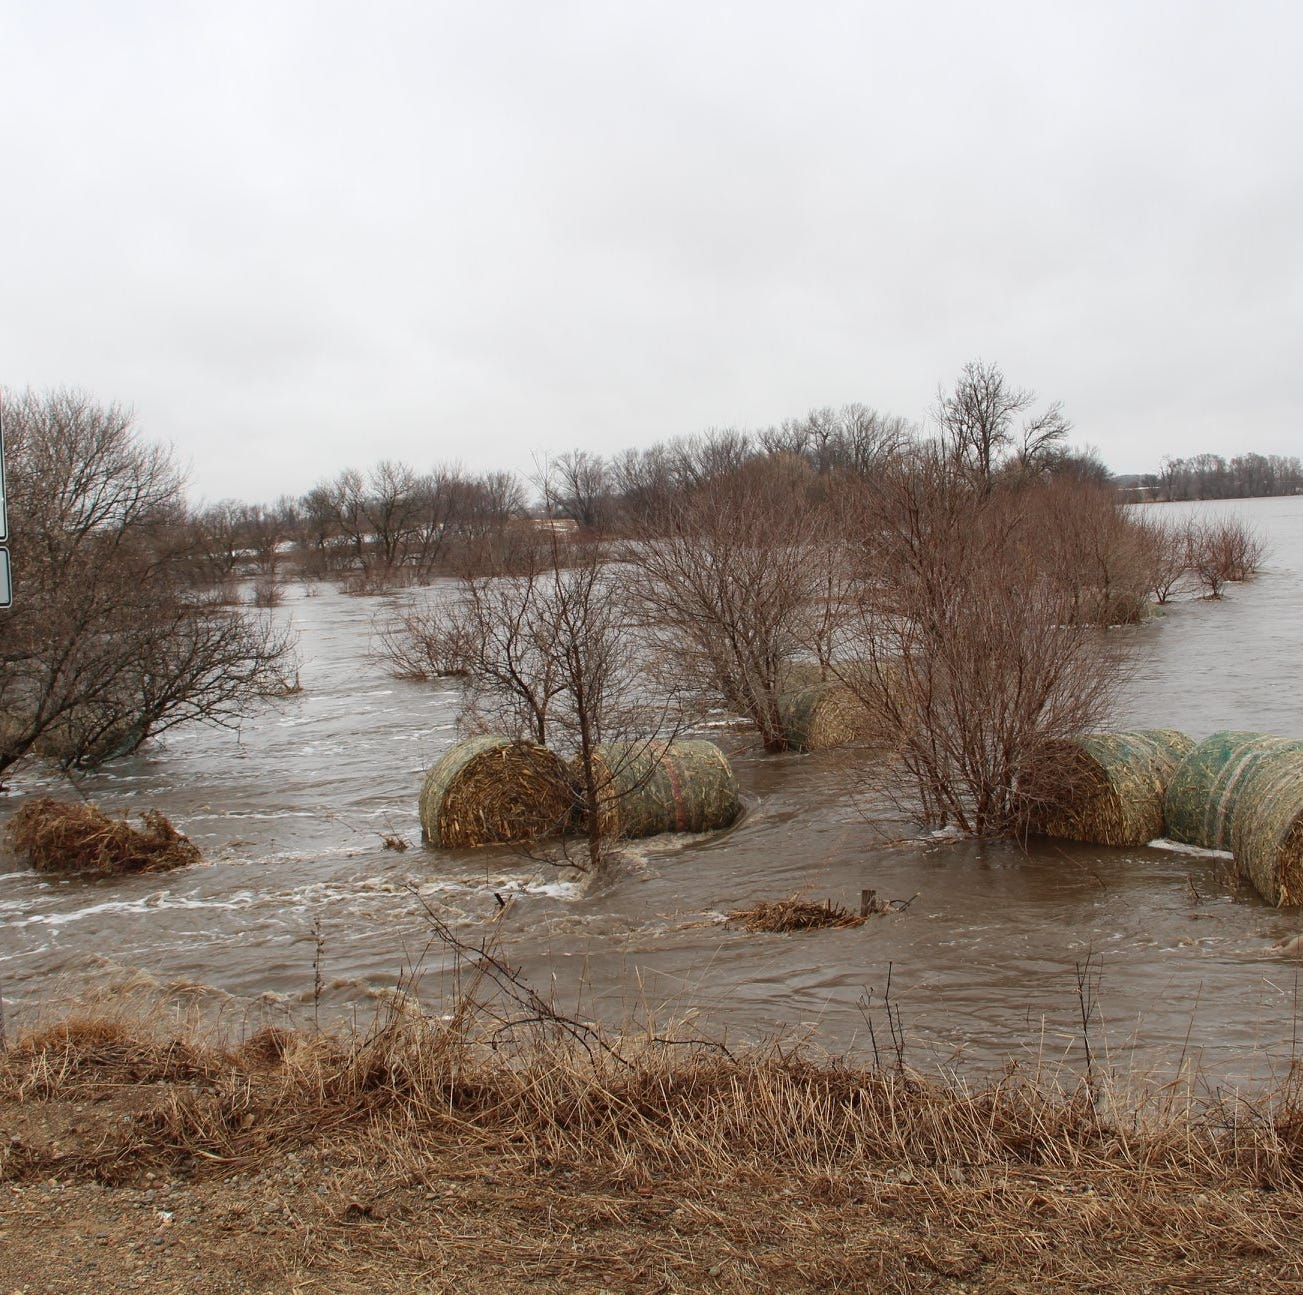 'This is way worse than we were expecting': Western Iowa town evacuates amid flooding